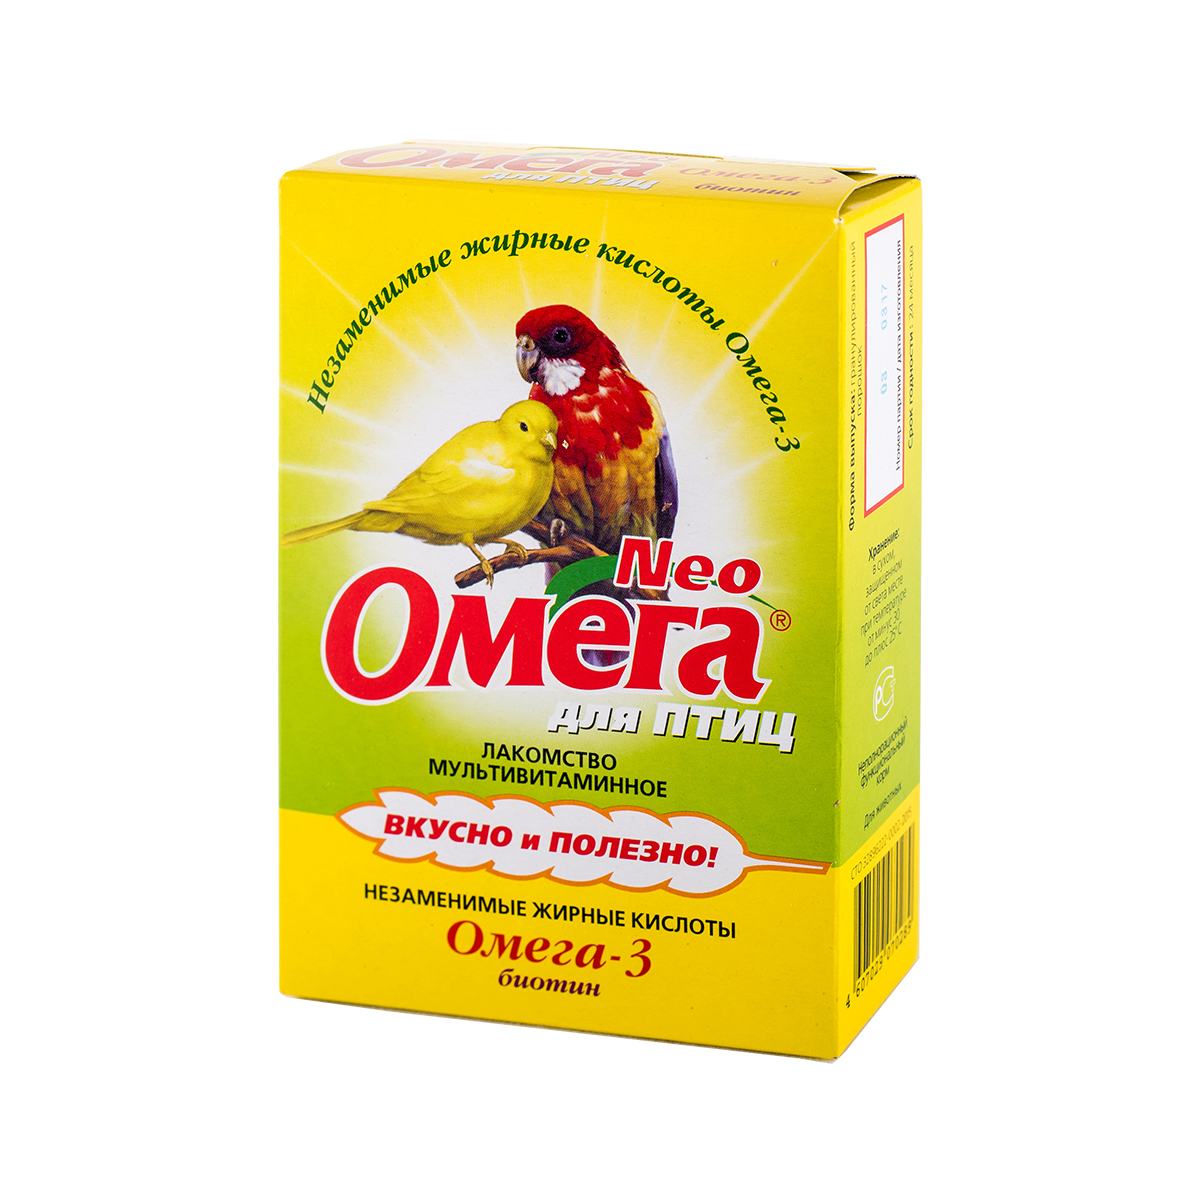 Omega Neo for birds with biotin